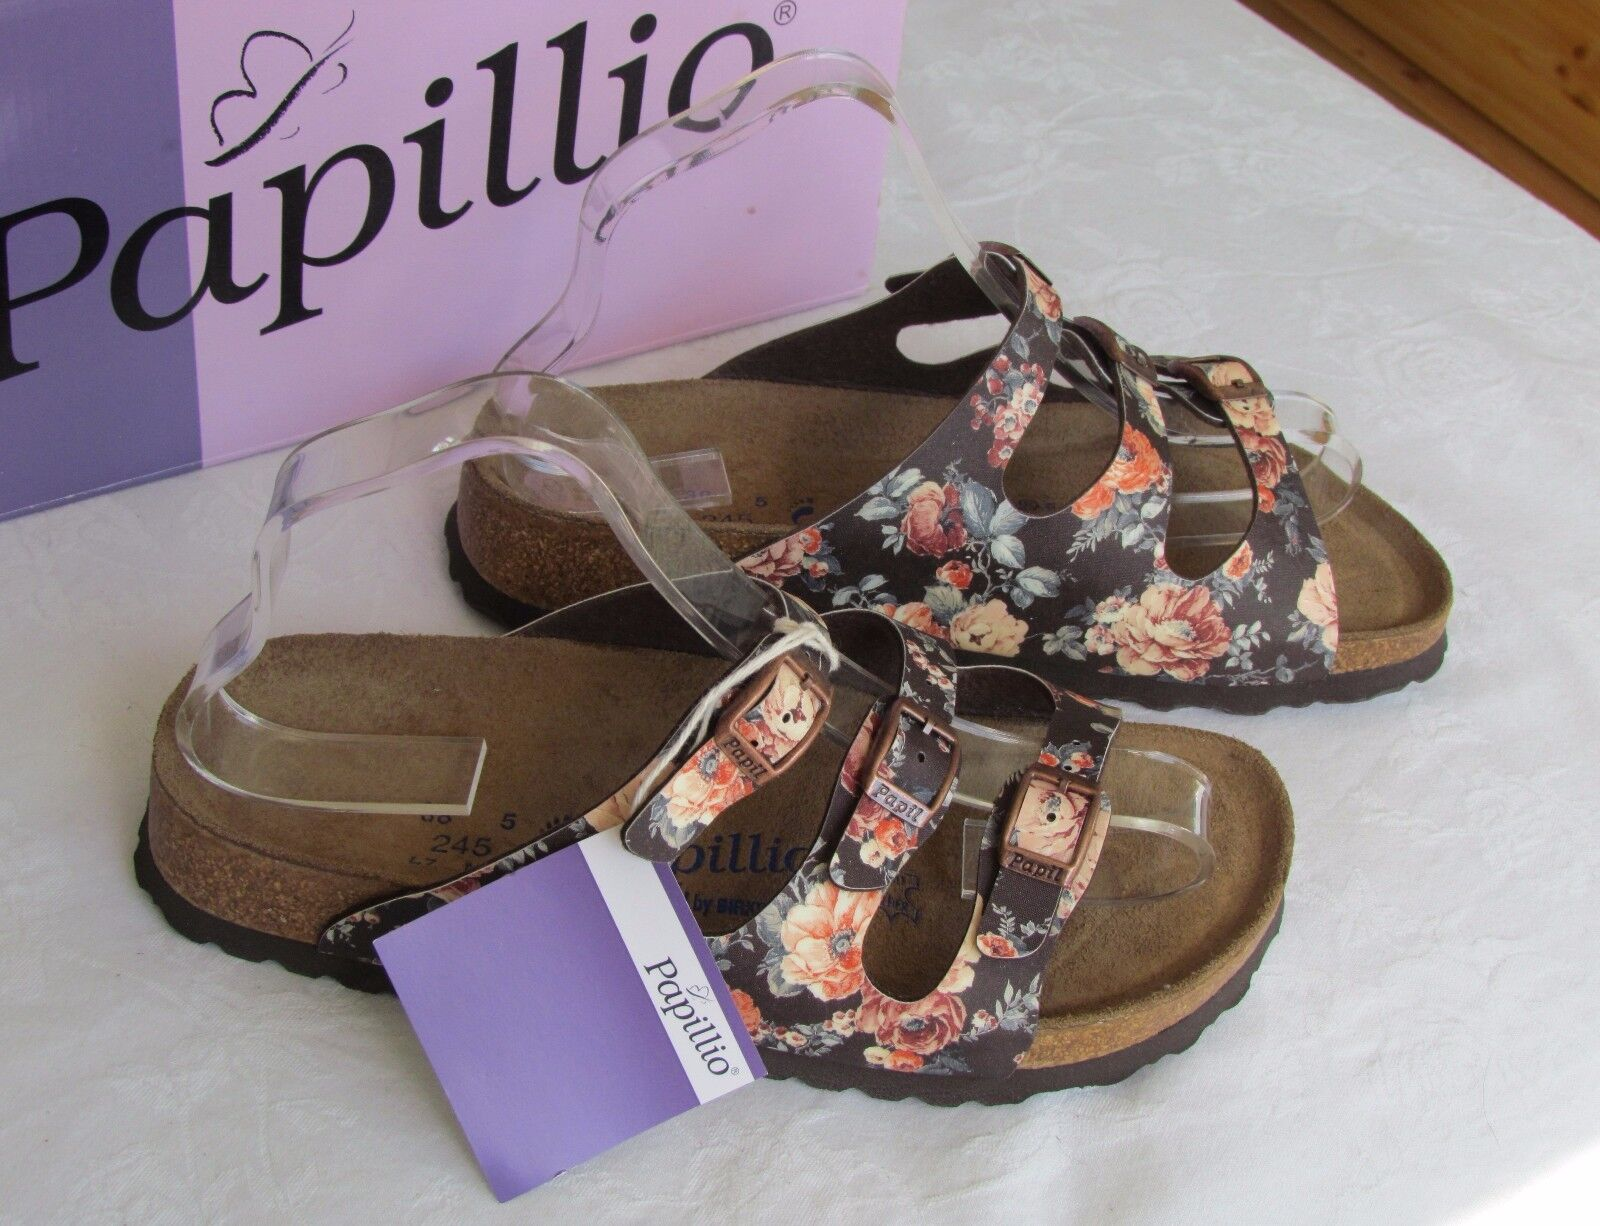 NEW Papillio Florida Ladies Brown Floral Soft Footbed Sandals Size 5 EU 38